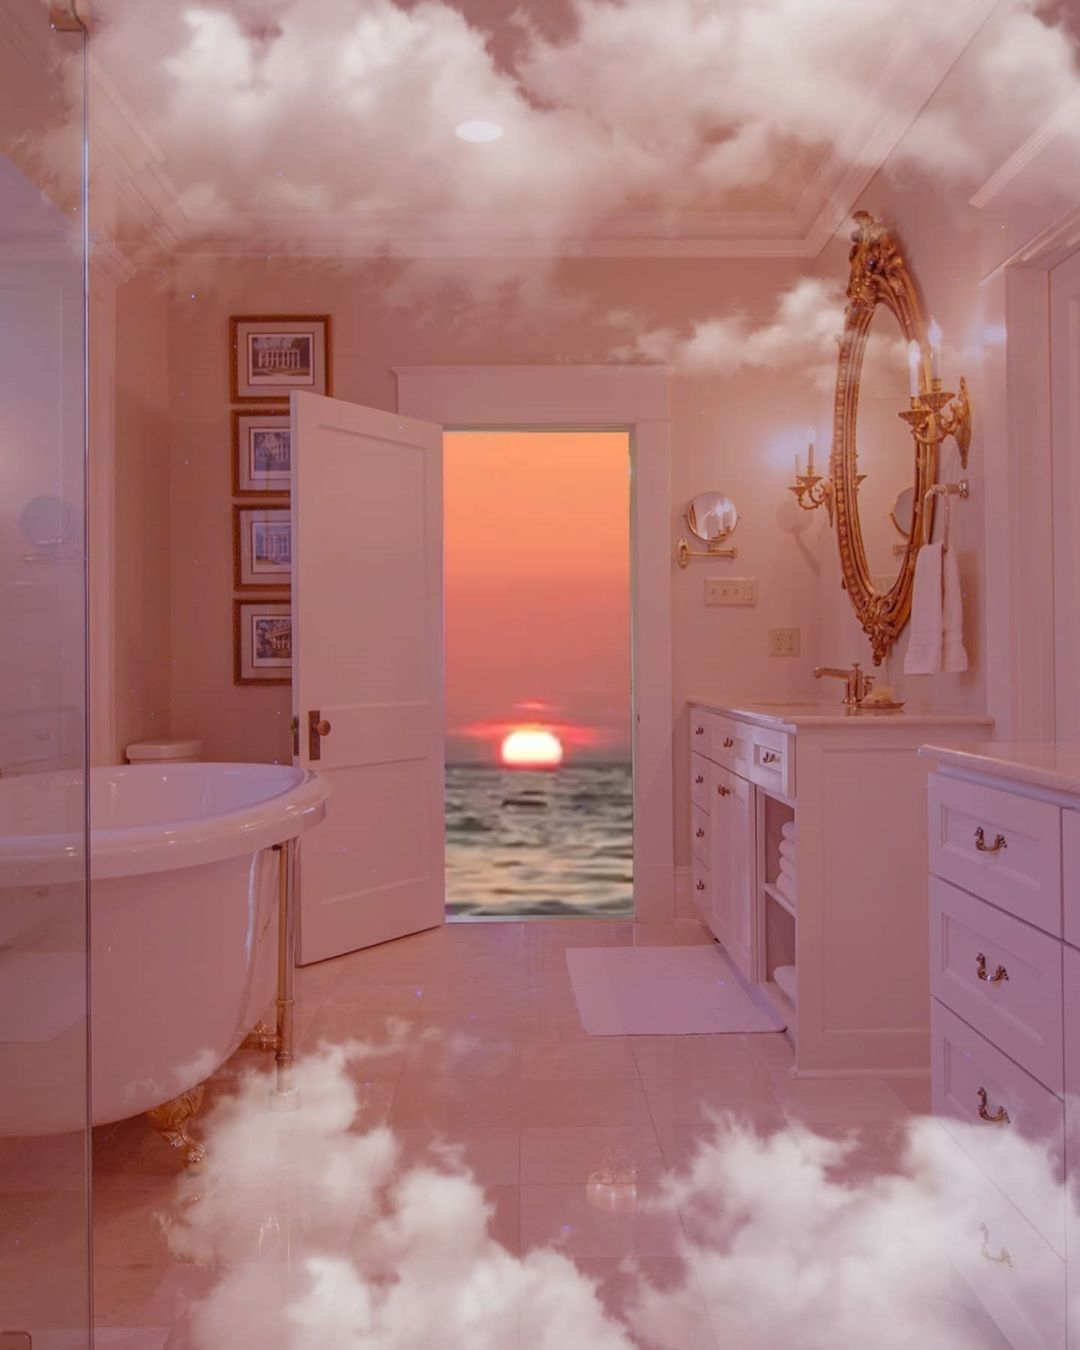 Aesthetic rooms ...